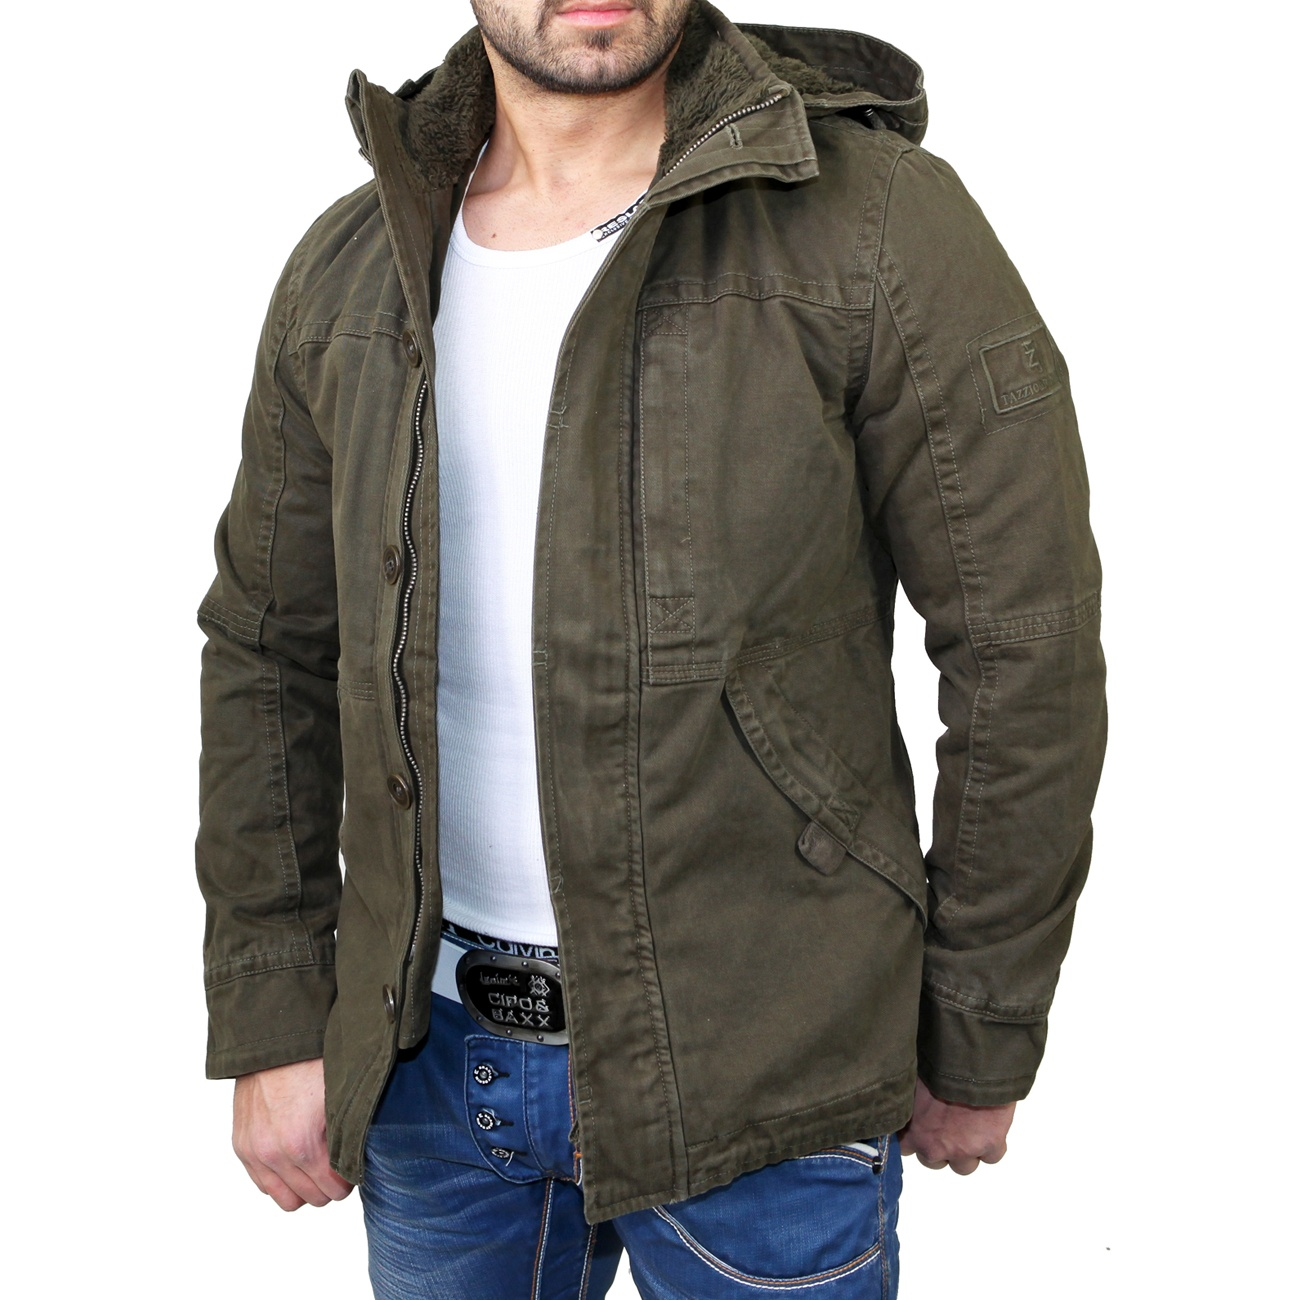 tazzio kapuzen jacke warme herren winter jacke tz 7001 army gr n neu ebay. Black Bedroom Furniture Sets. Home Design Ideas